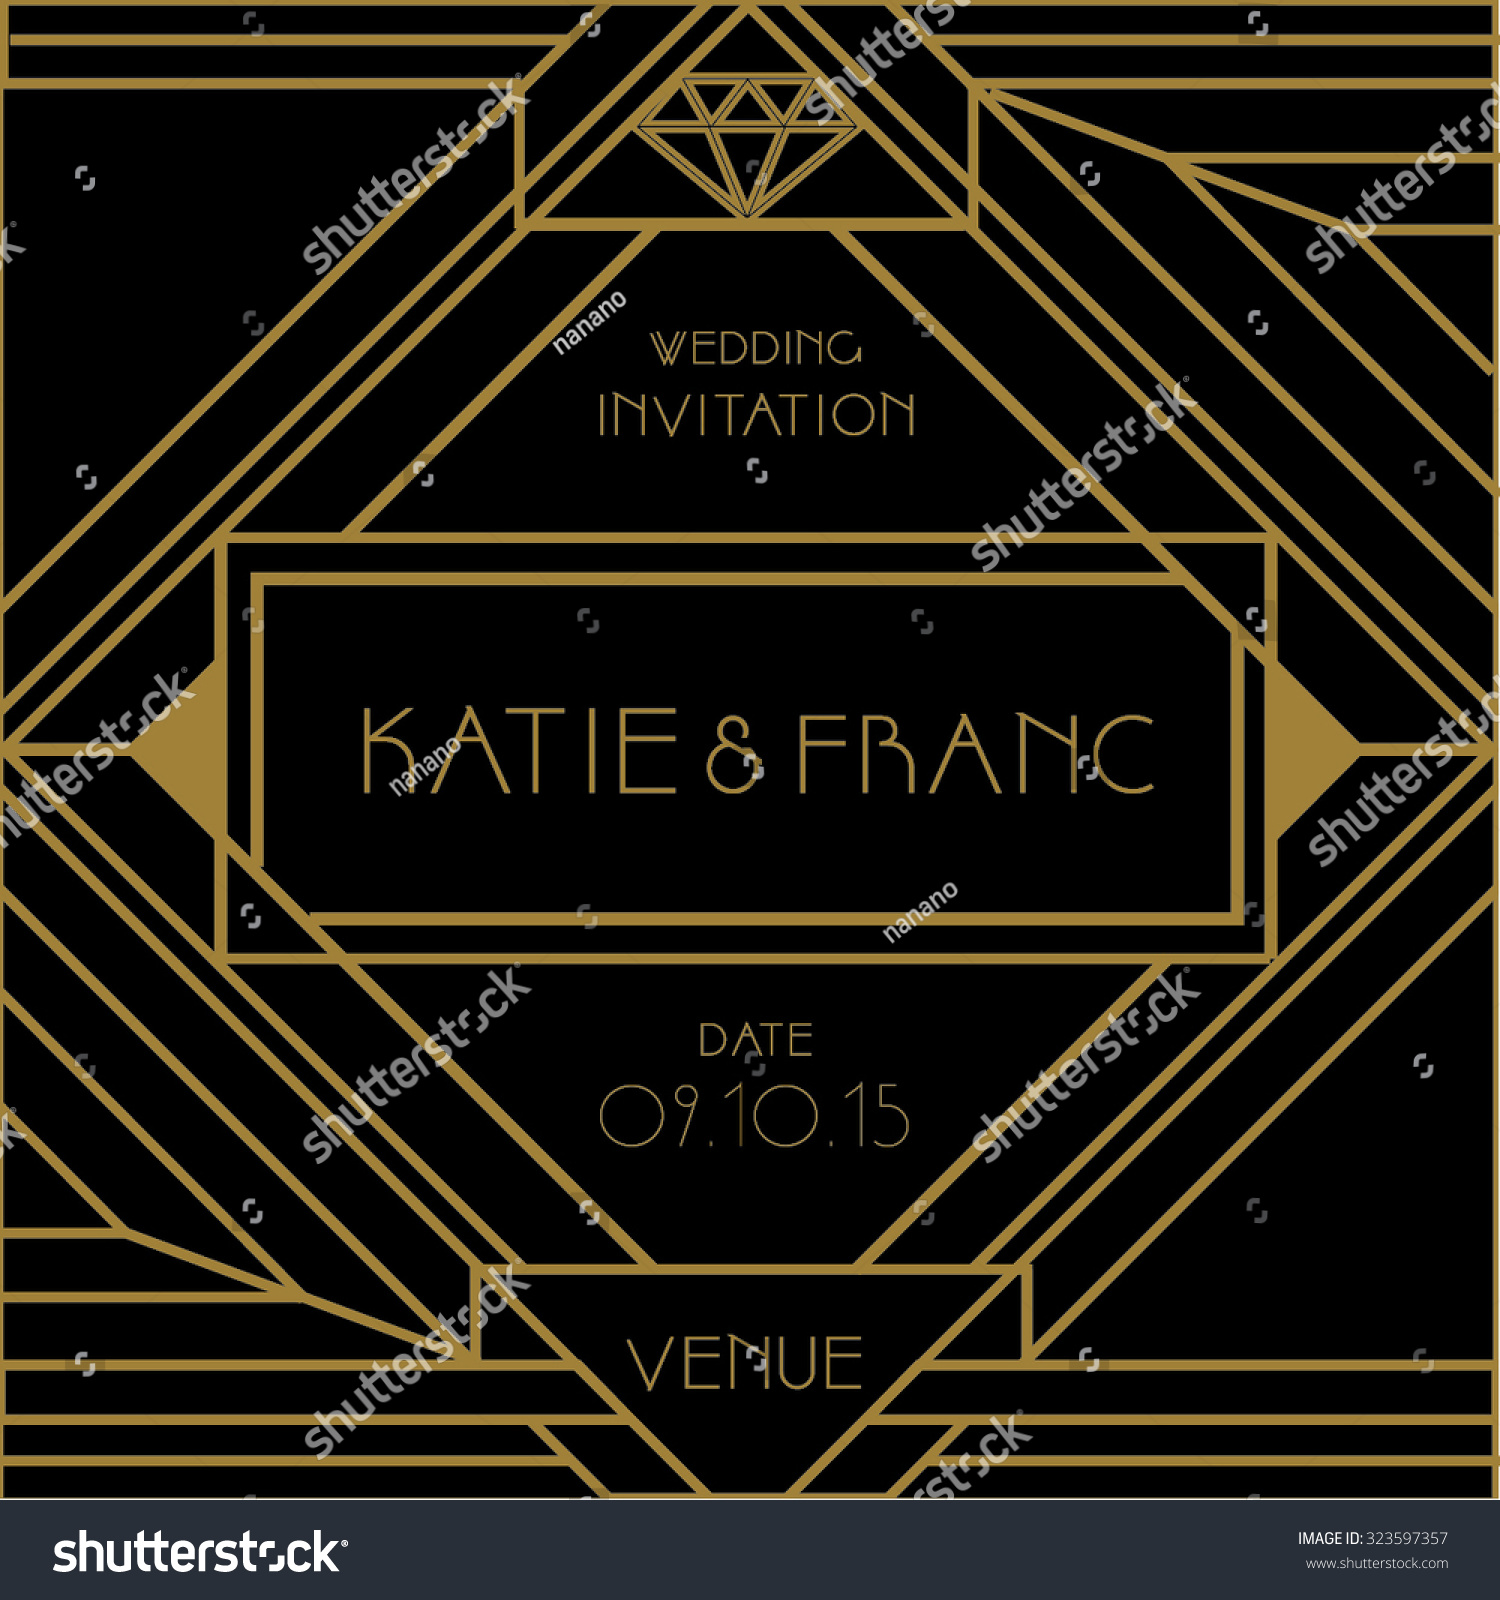 Art deco wedding invitation card vector stock vector 323597357 art deco wedding invitation card vector stock vector 323597357 shutterstock stopboris